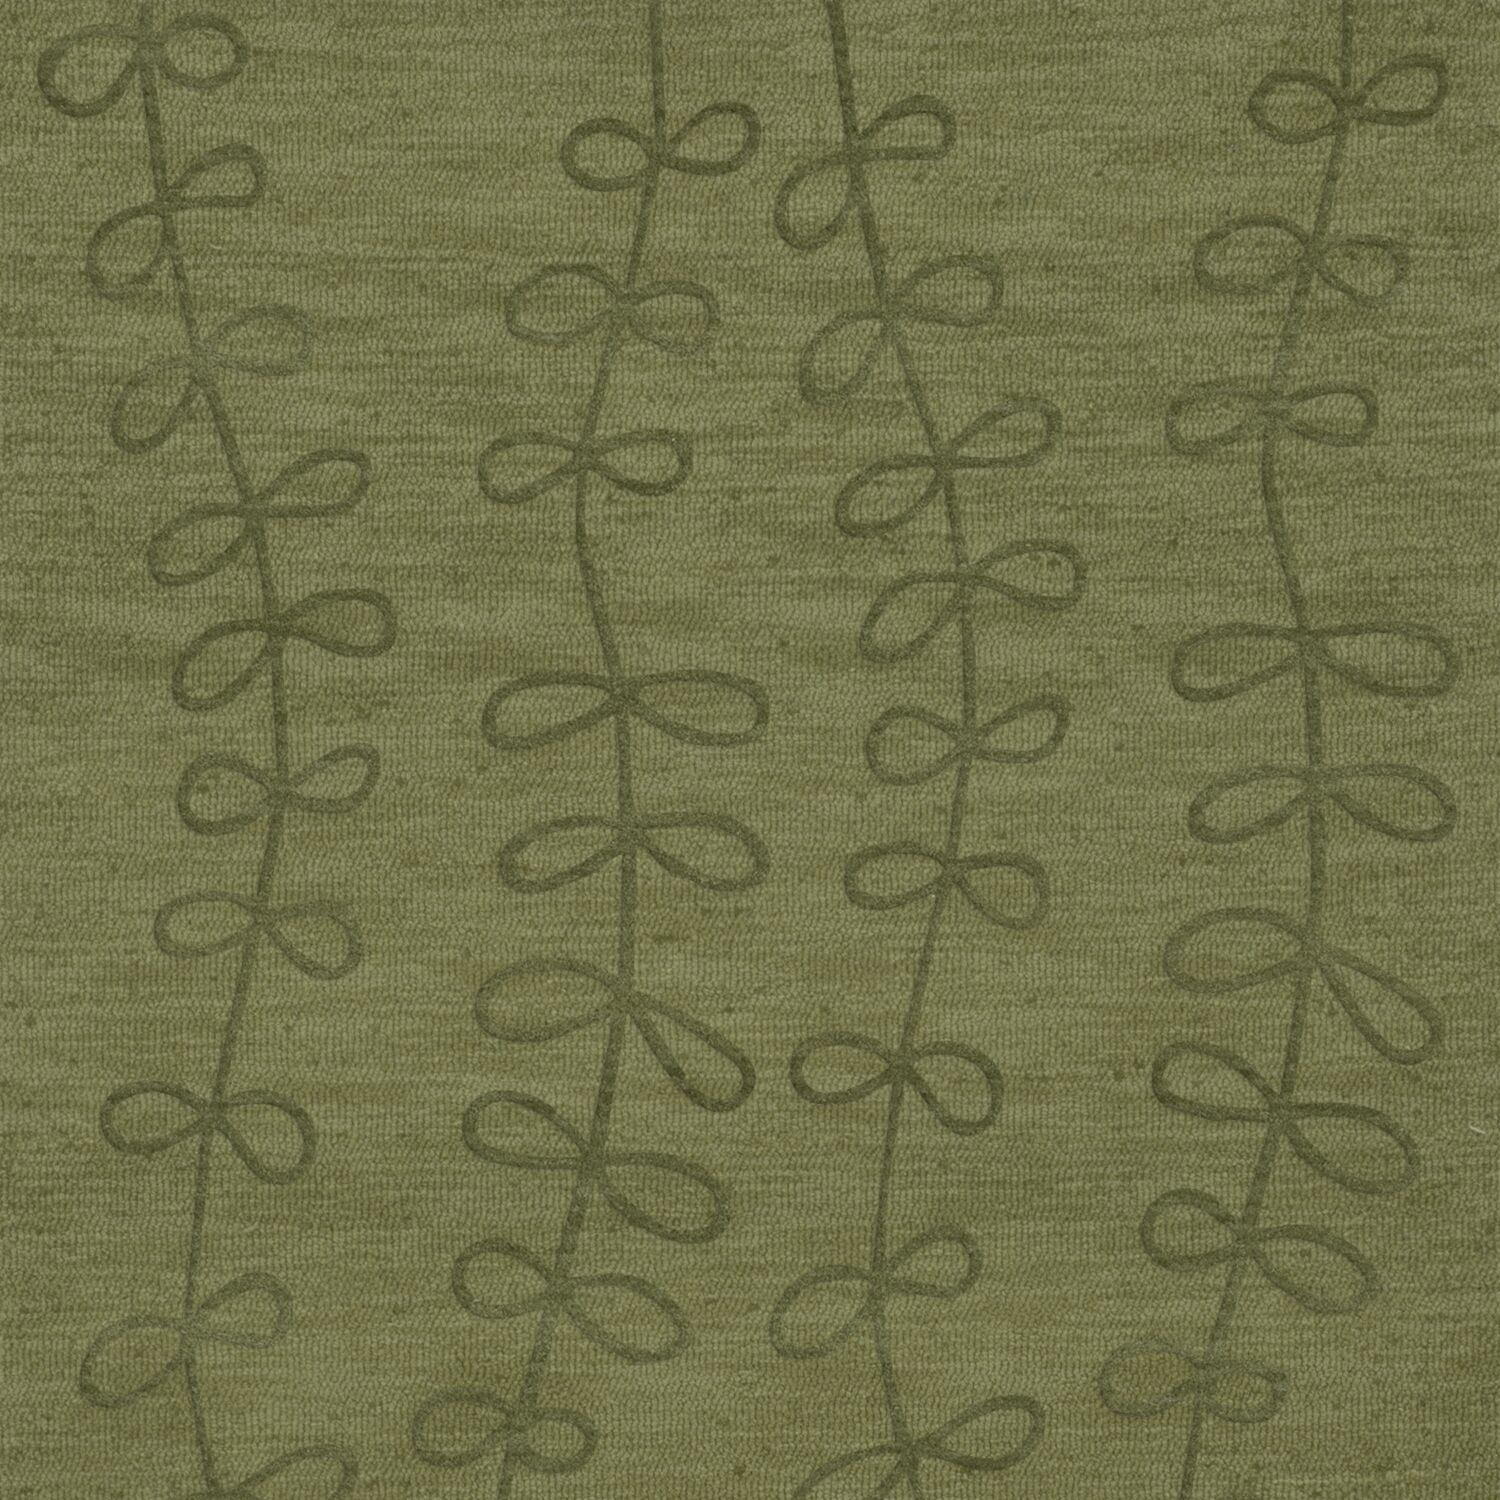 Bella Machine Woven Wool Green Area Rug Rug Size: Square 10'